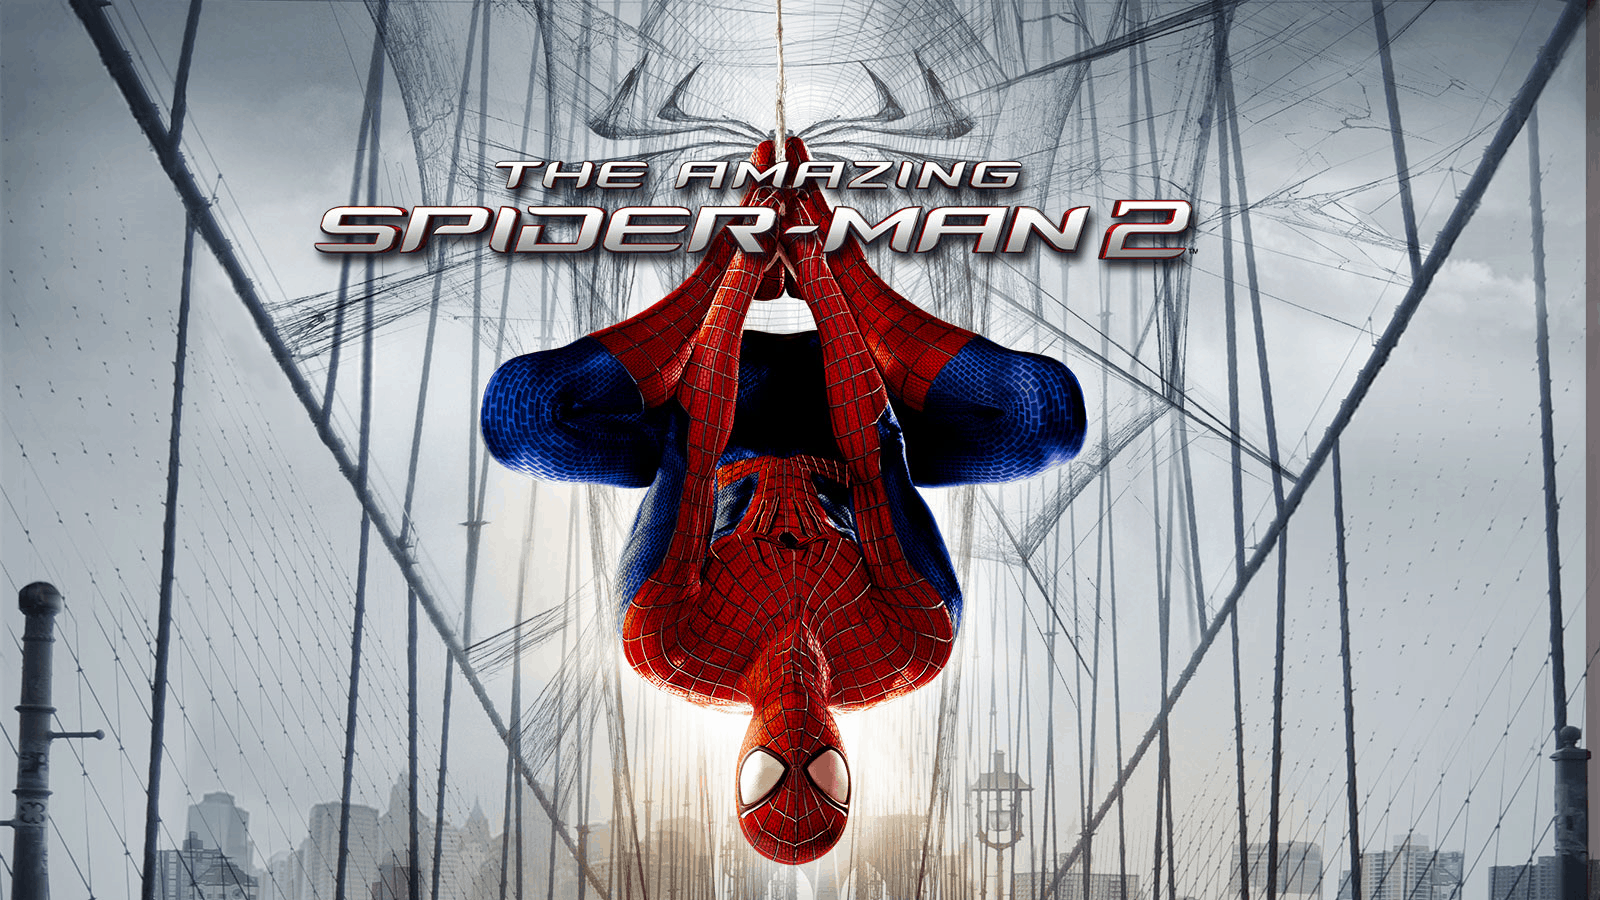 PC The Amazing Spider-Man 2 SaveGame 100% - Save File Download